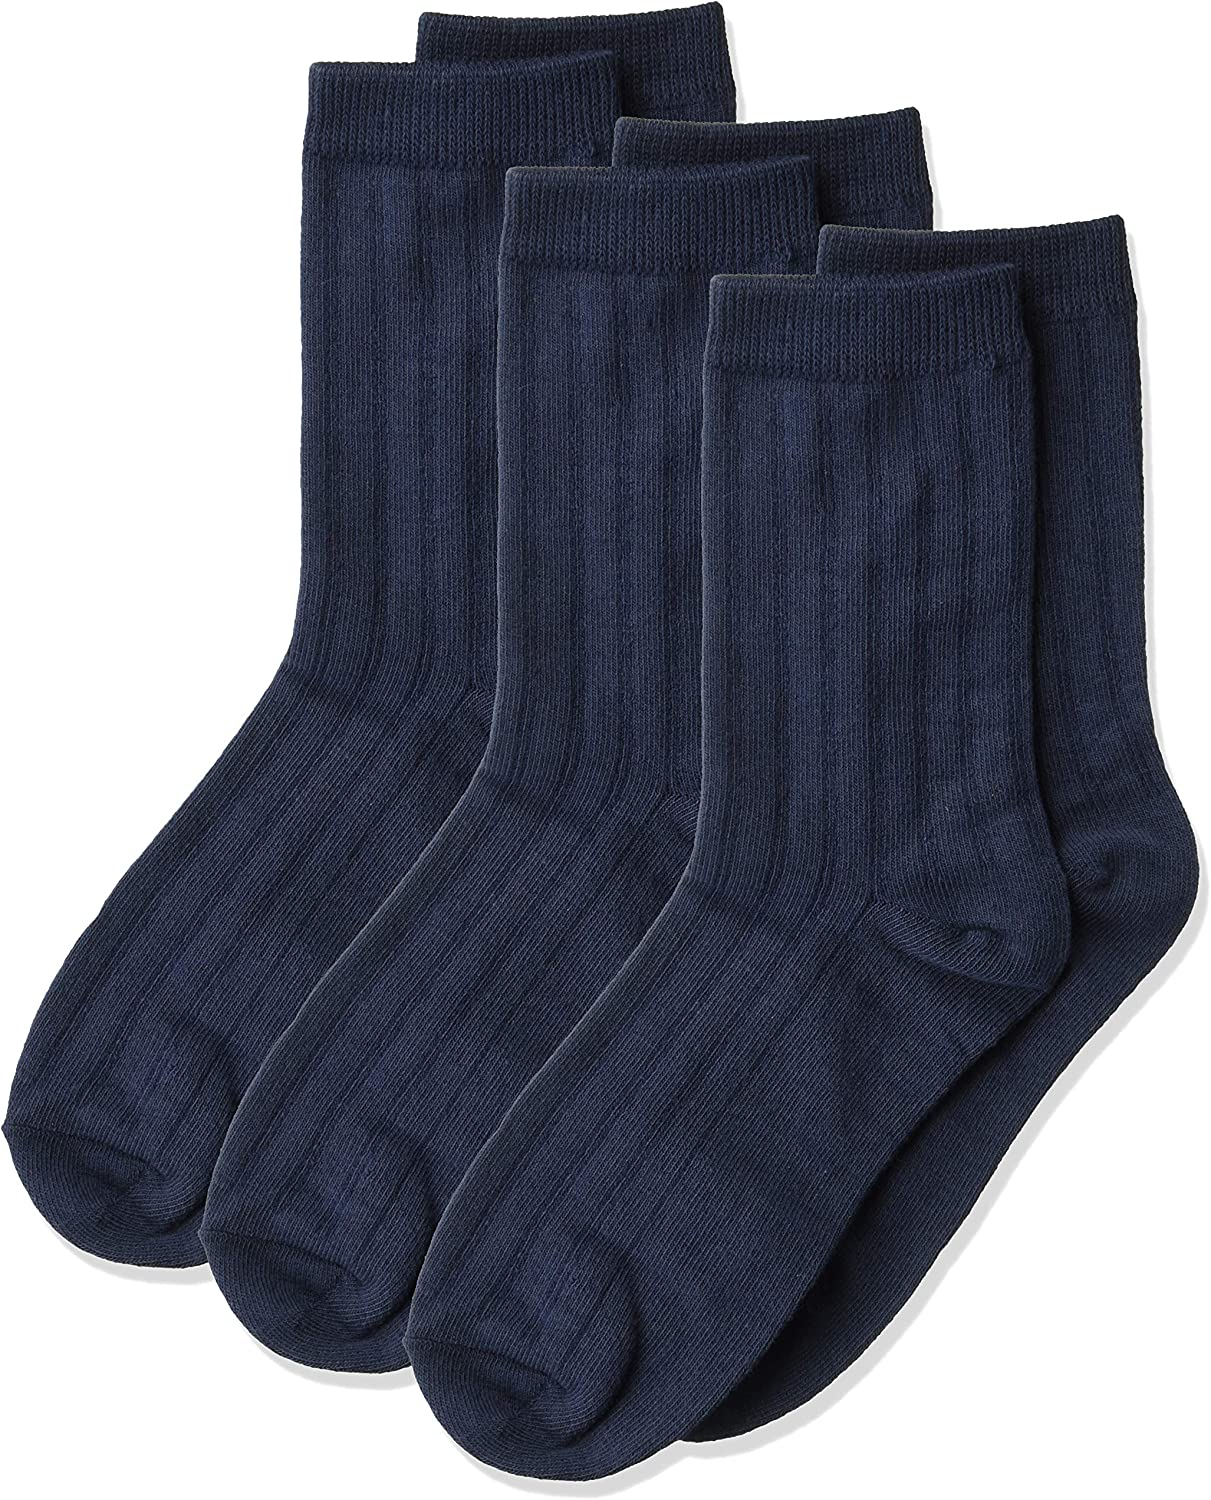 Jefferies Socks Little Boys' Crew National products Three-Pack Sock Ribbed List price